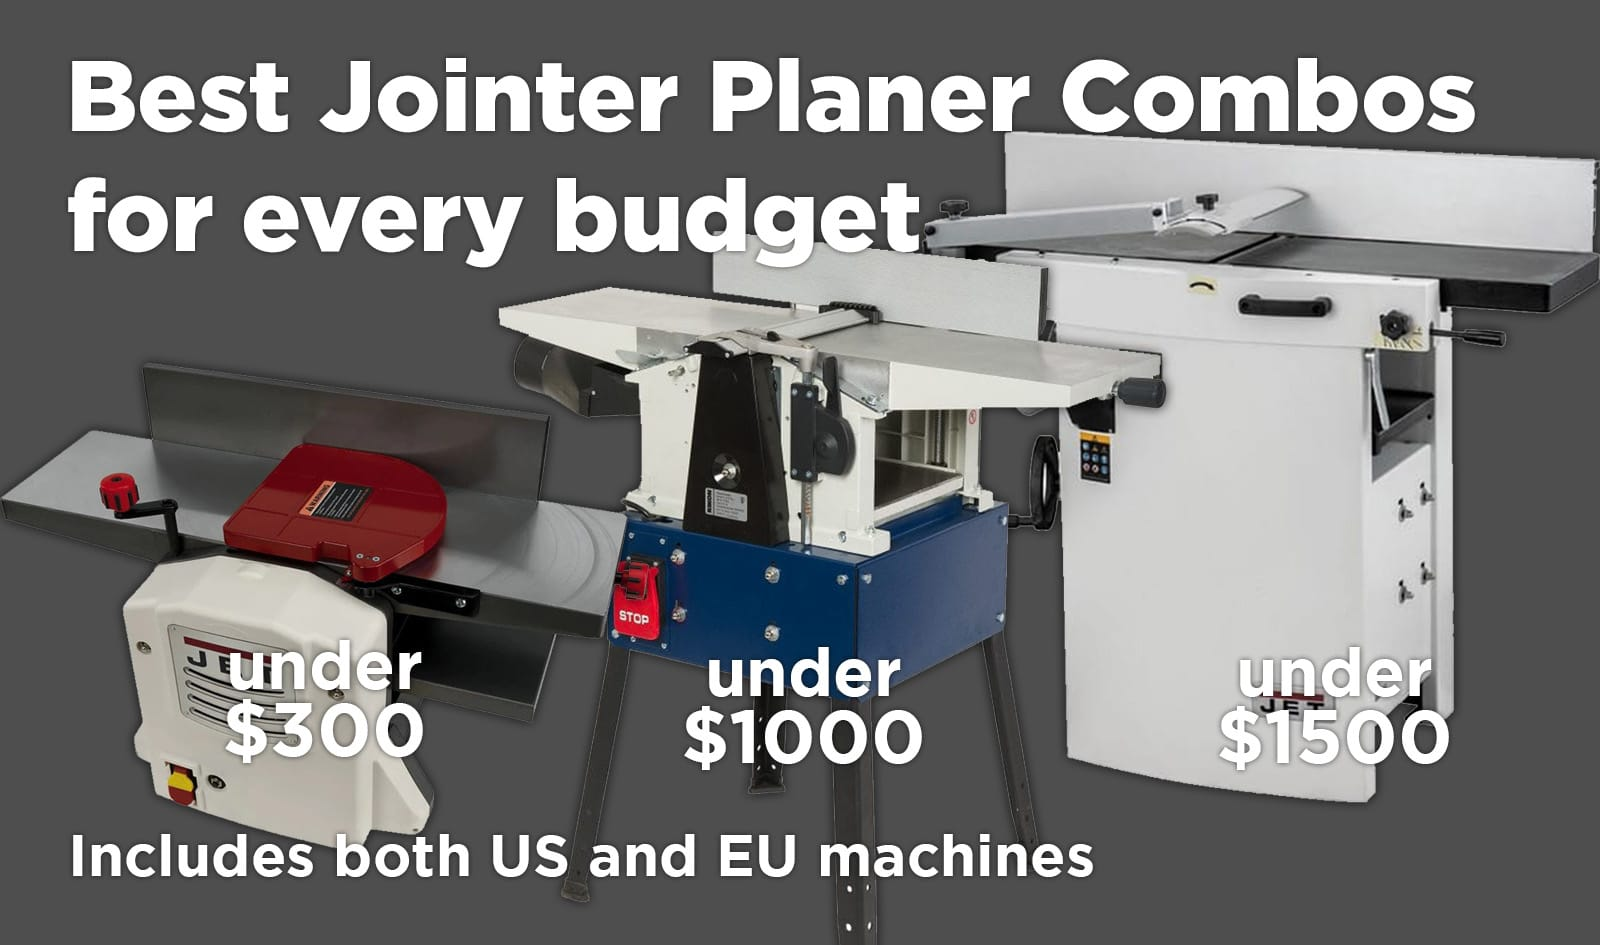 The best Jointer Planer Combo for every budget (2020) – Buyer's Guide